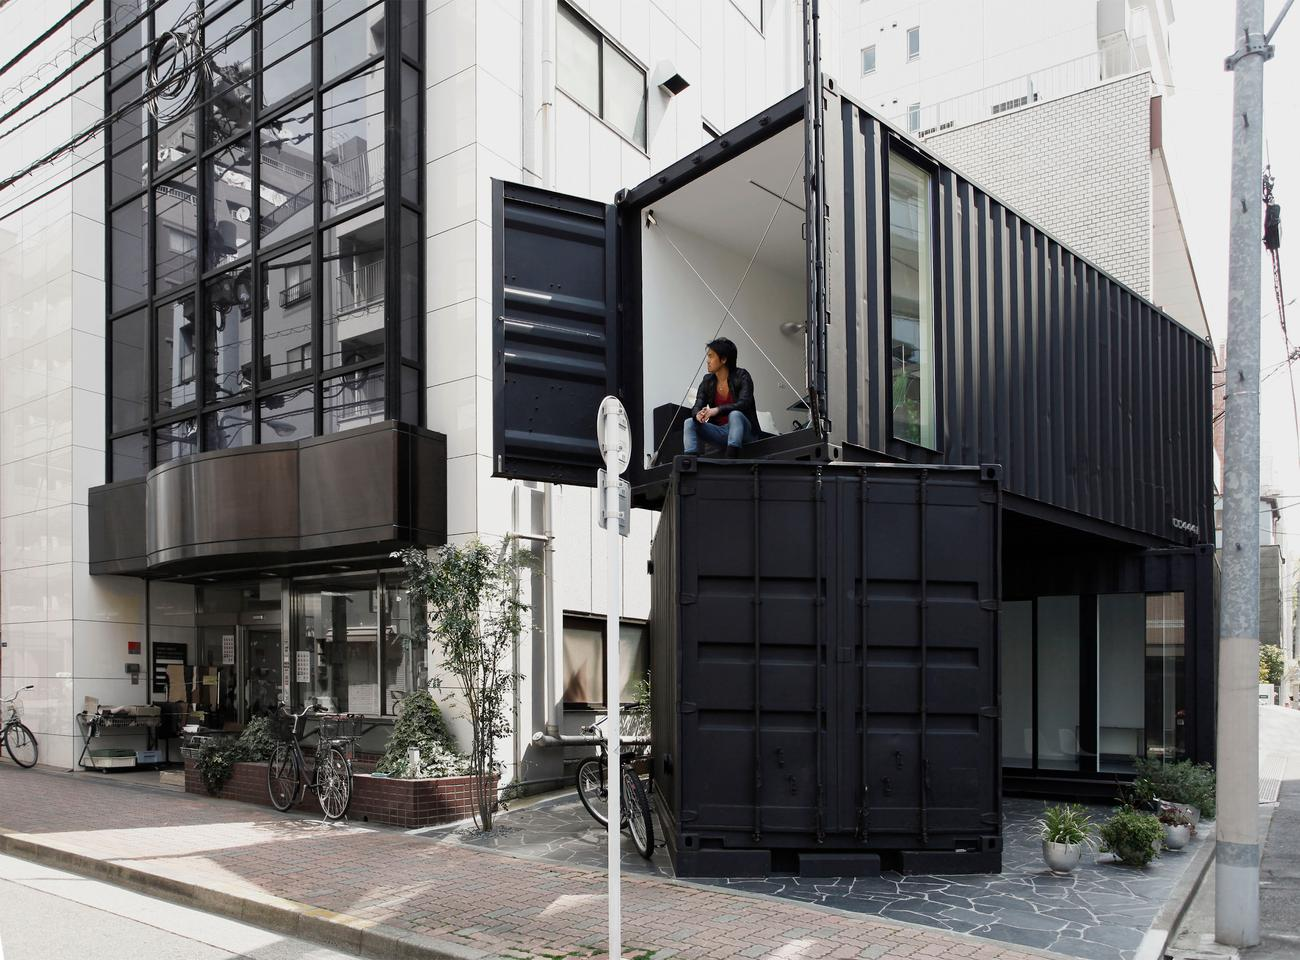 Double story container site disguises a modern office space designed by Japanese architectural firm, Tomokazu Hayakawa